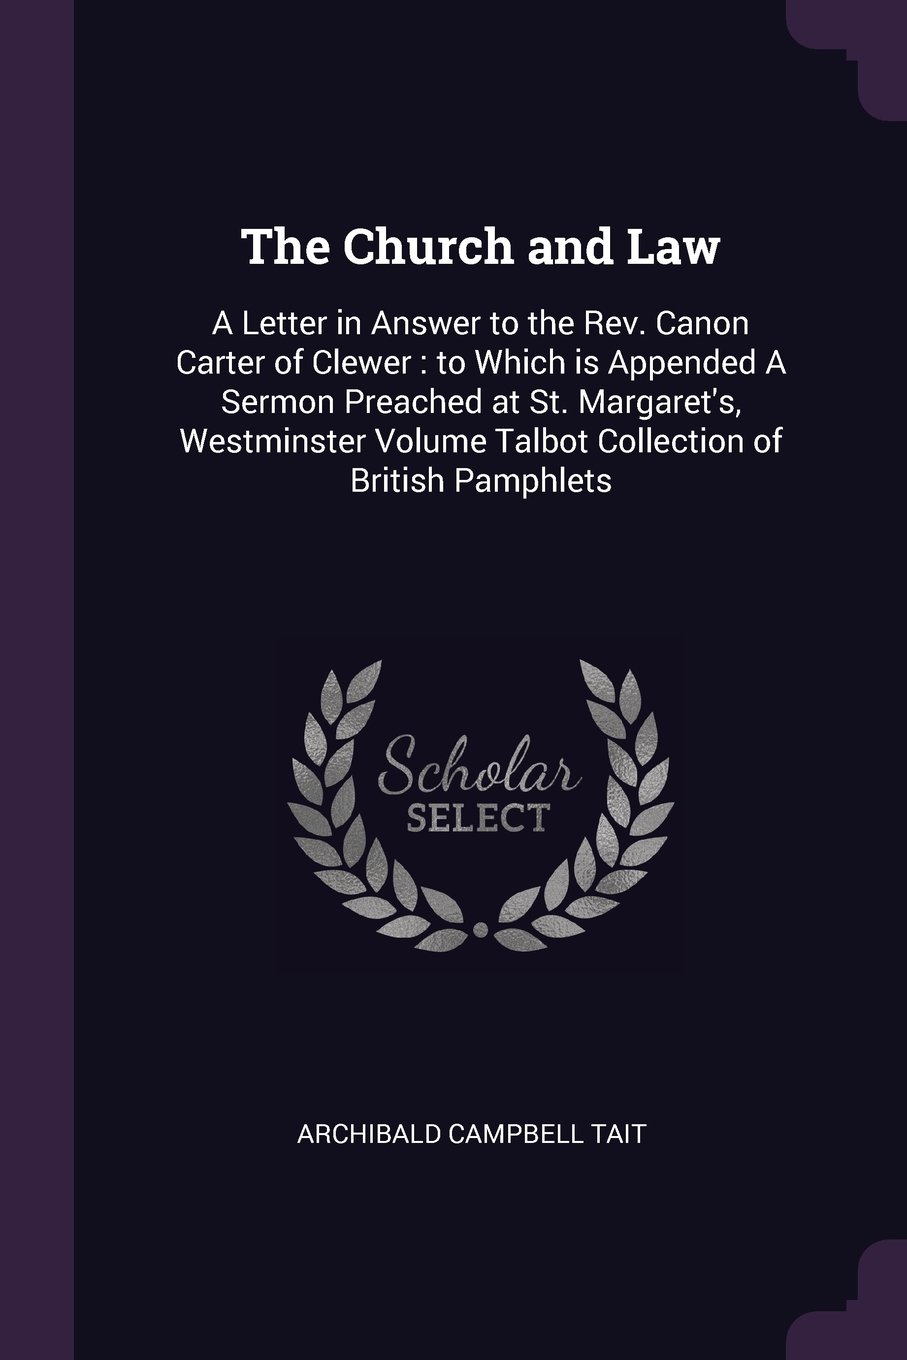 Download The Church and Law: A Letter in Answer to the Rev. Canon Carter of Clewer : to Which is Appended A Sermon Preached at St. Margaret's, Westminster Volume Talbot Collection of British Pamphlets pdf epub